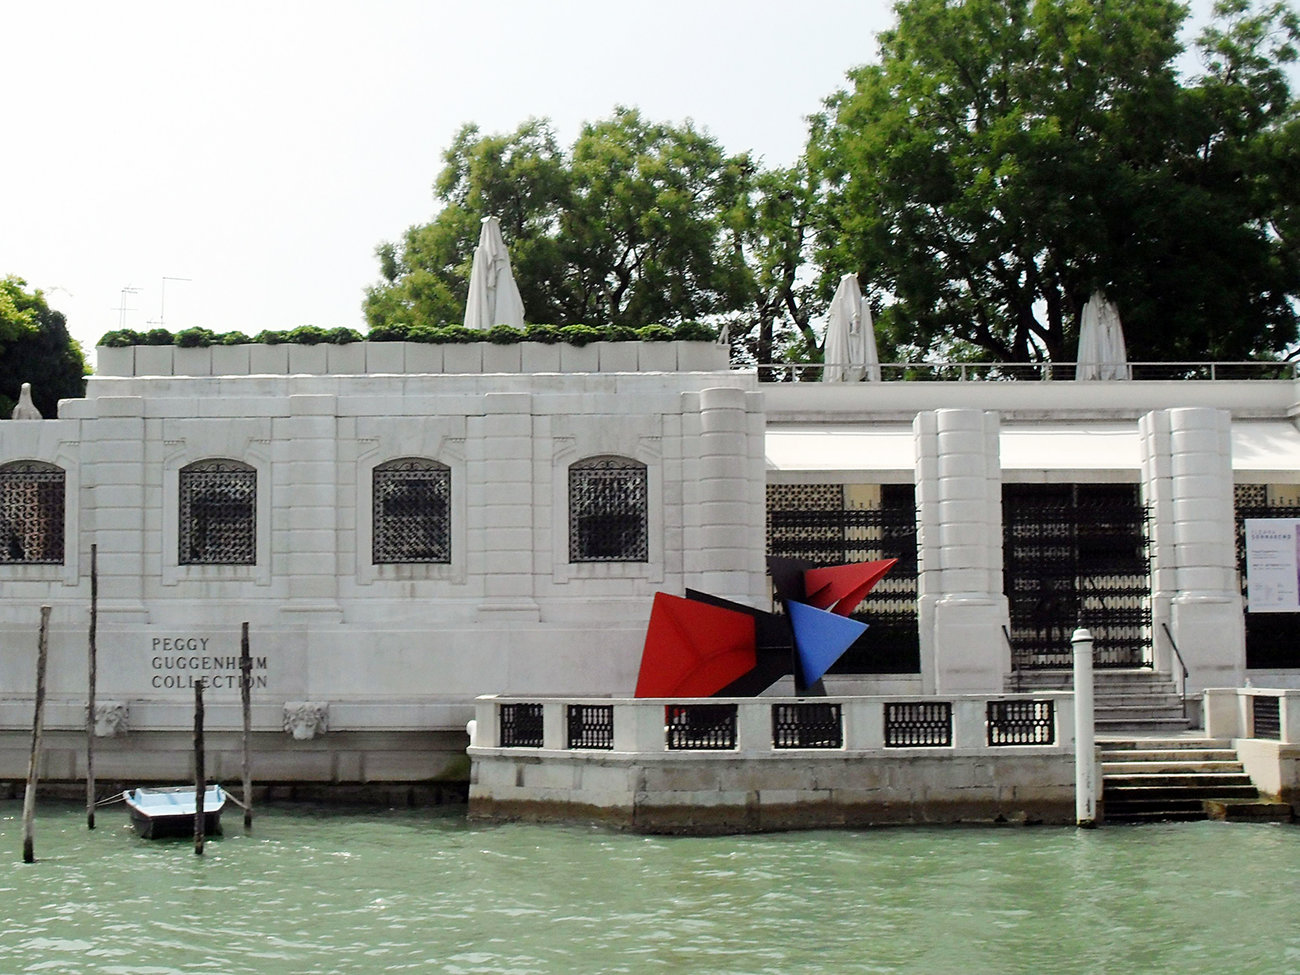 Peggy Guggenheim Collection Museum in Venice